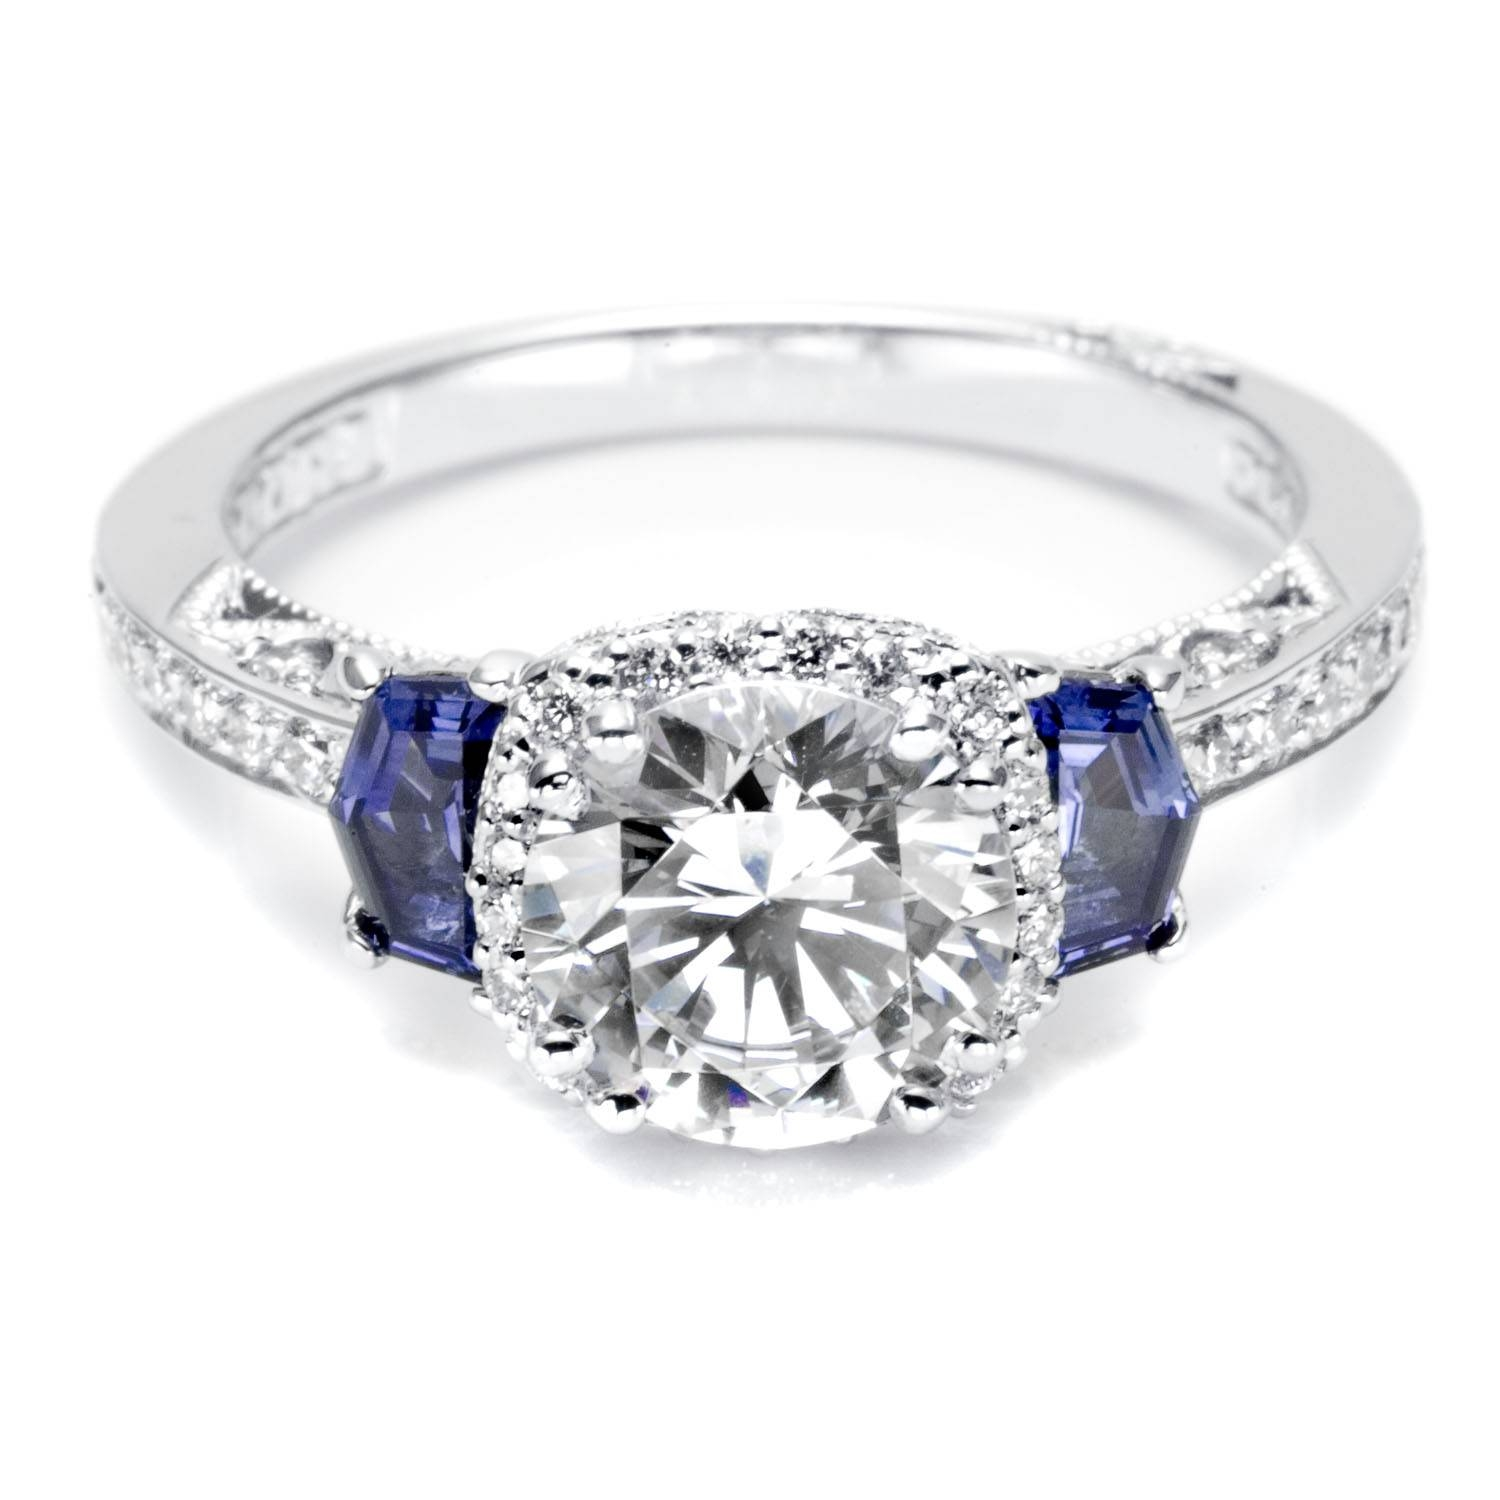 Engagement Rings : Holts Rings Diamond Engagement Rings With Within Engagement Rings Sapphire (View 10 of 15)